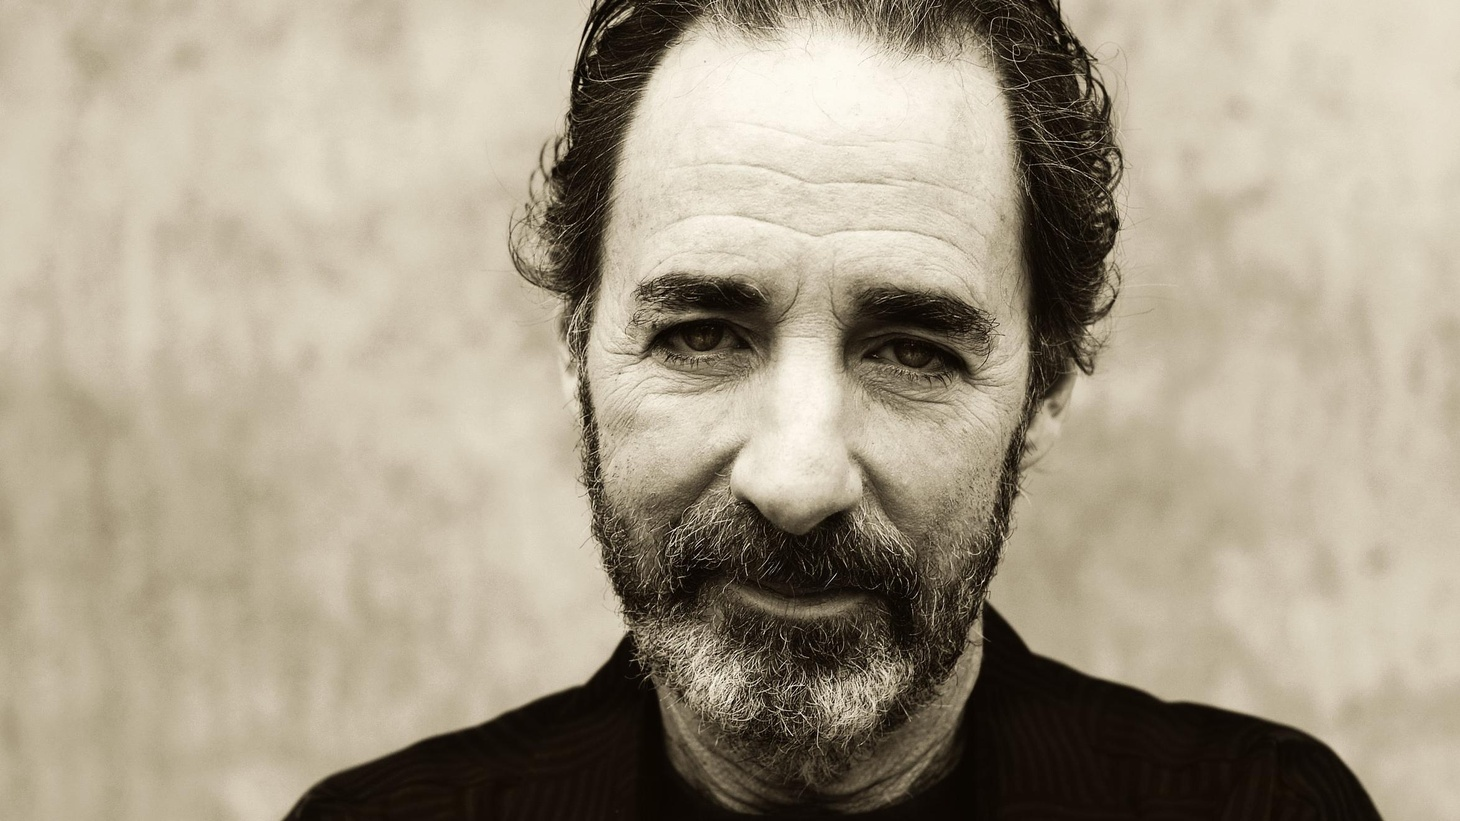 Support le Show's broadcast and archived audio on KCRW.com and HarryShearer.com. Please subscribe or renew online to KCRW.